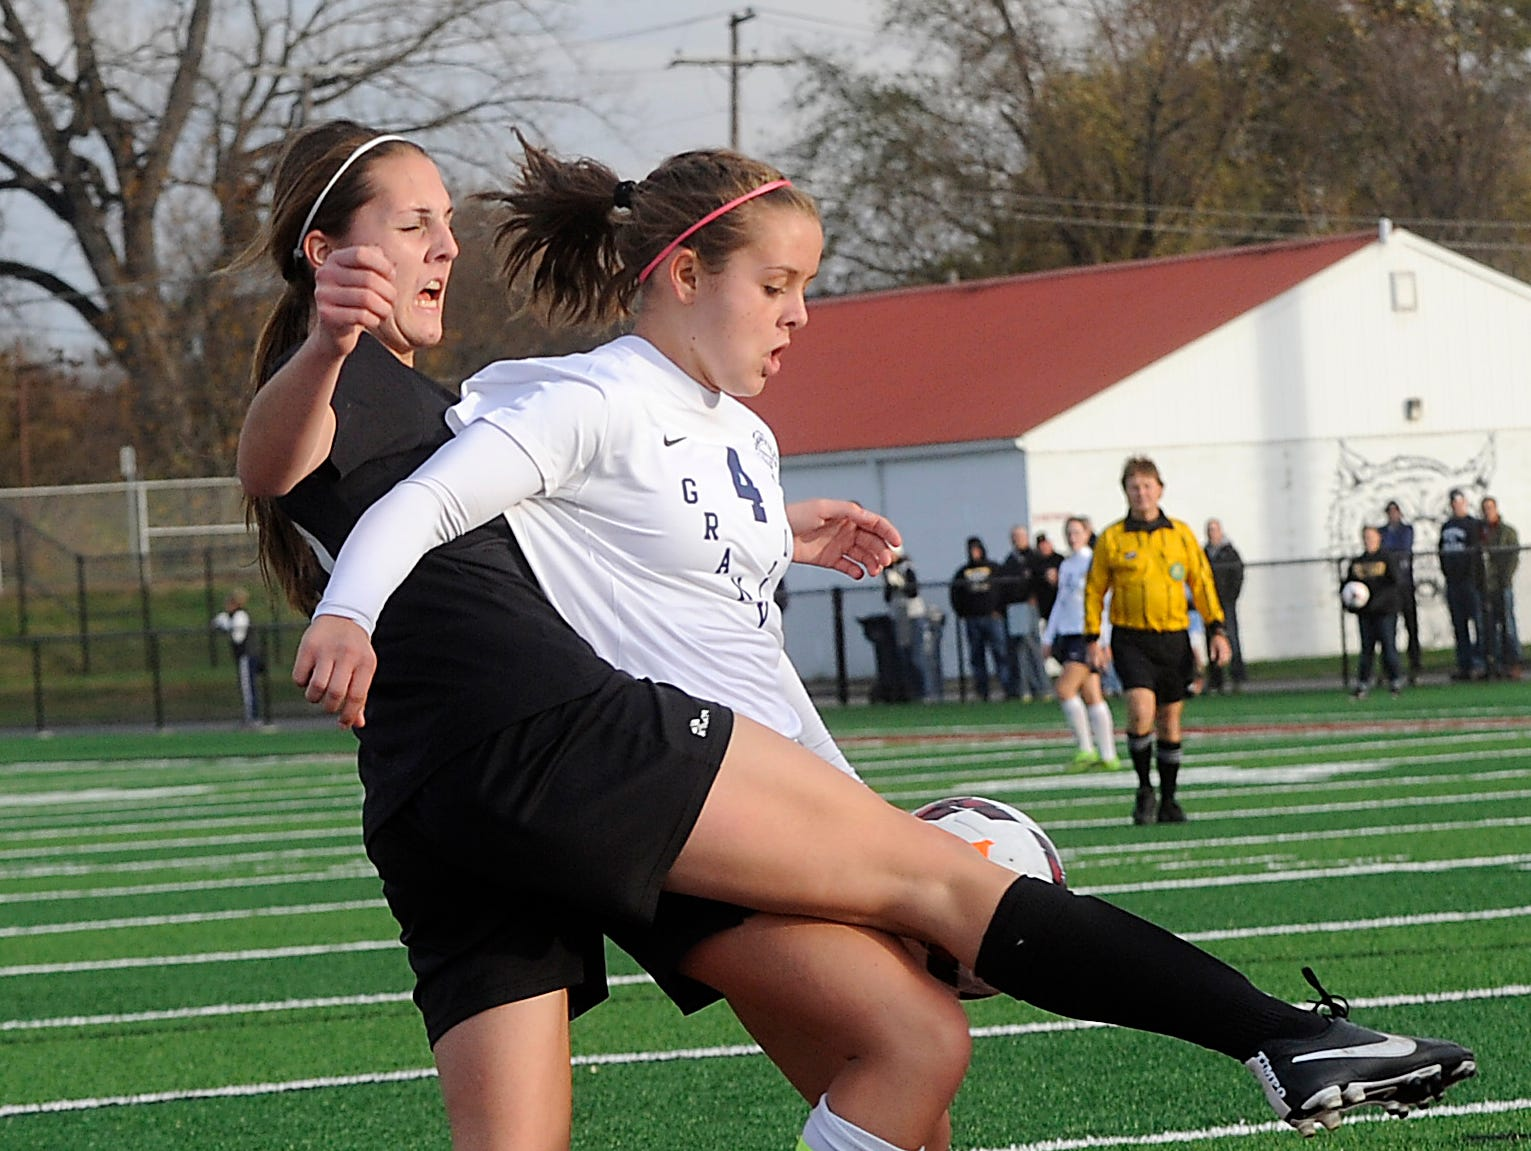 Tri-Valley defender Jenni Walker tries to block Granville's Taylor Beitzel from the goal as she earns her second of three goals. Granville defeated Tri-Valley 10-1 in the Division II regional final on Saturday, Nov. 7, 2015, at White Field in Newark. The Blue Aces will advance to play Indian Hill in the state tournament.